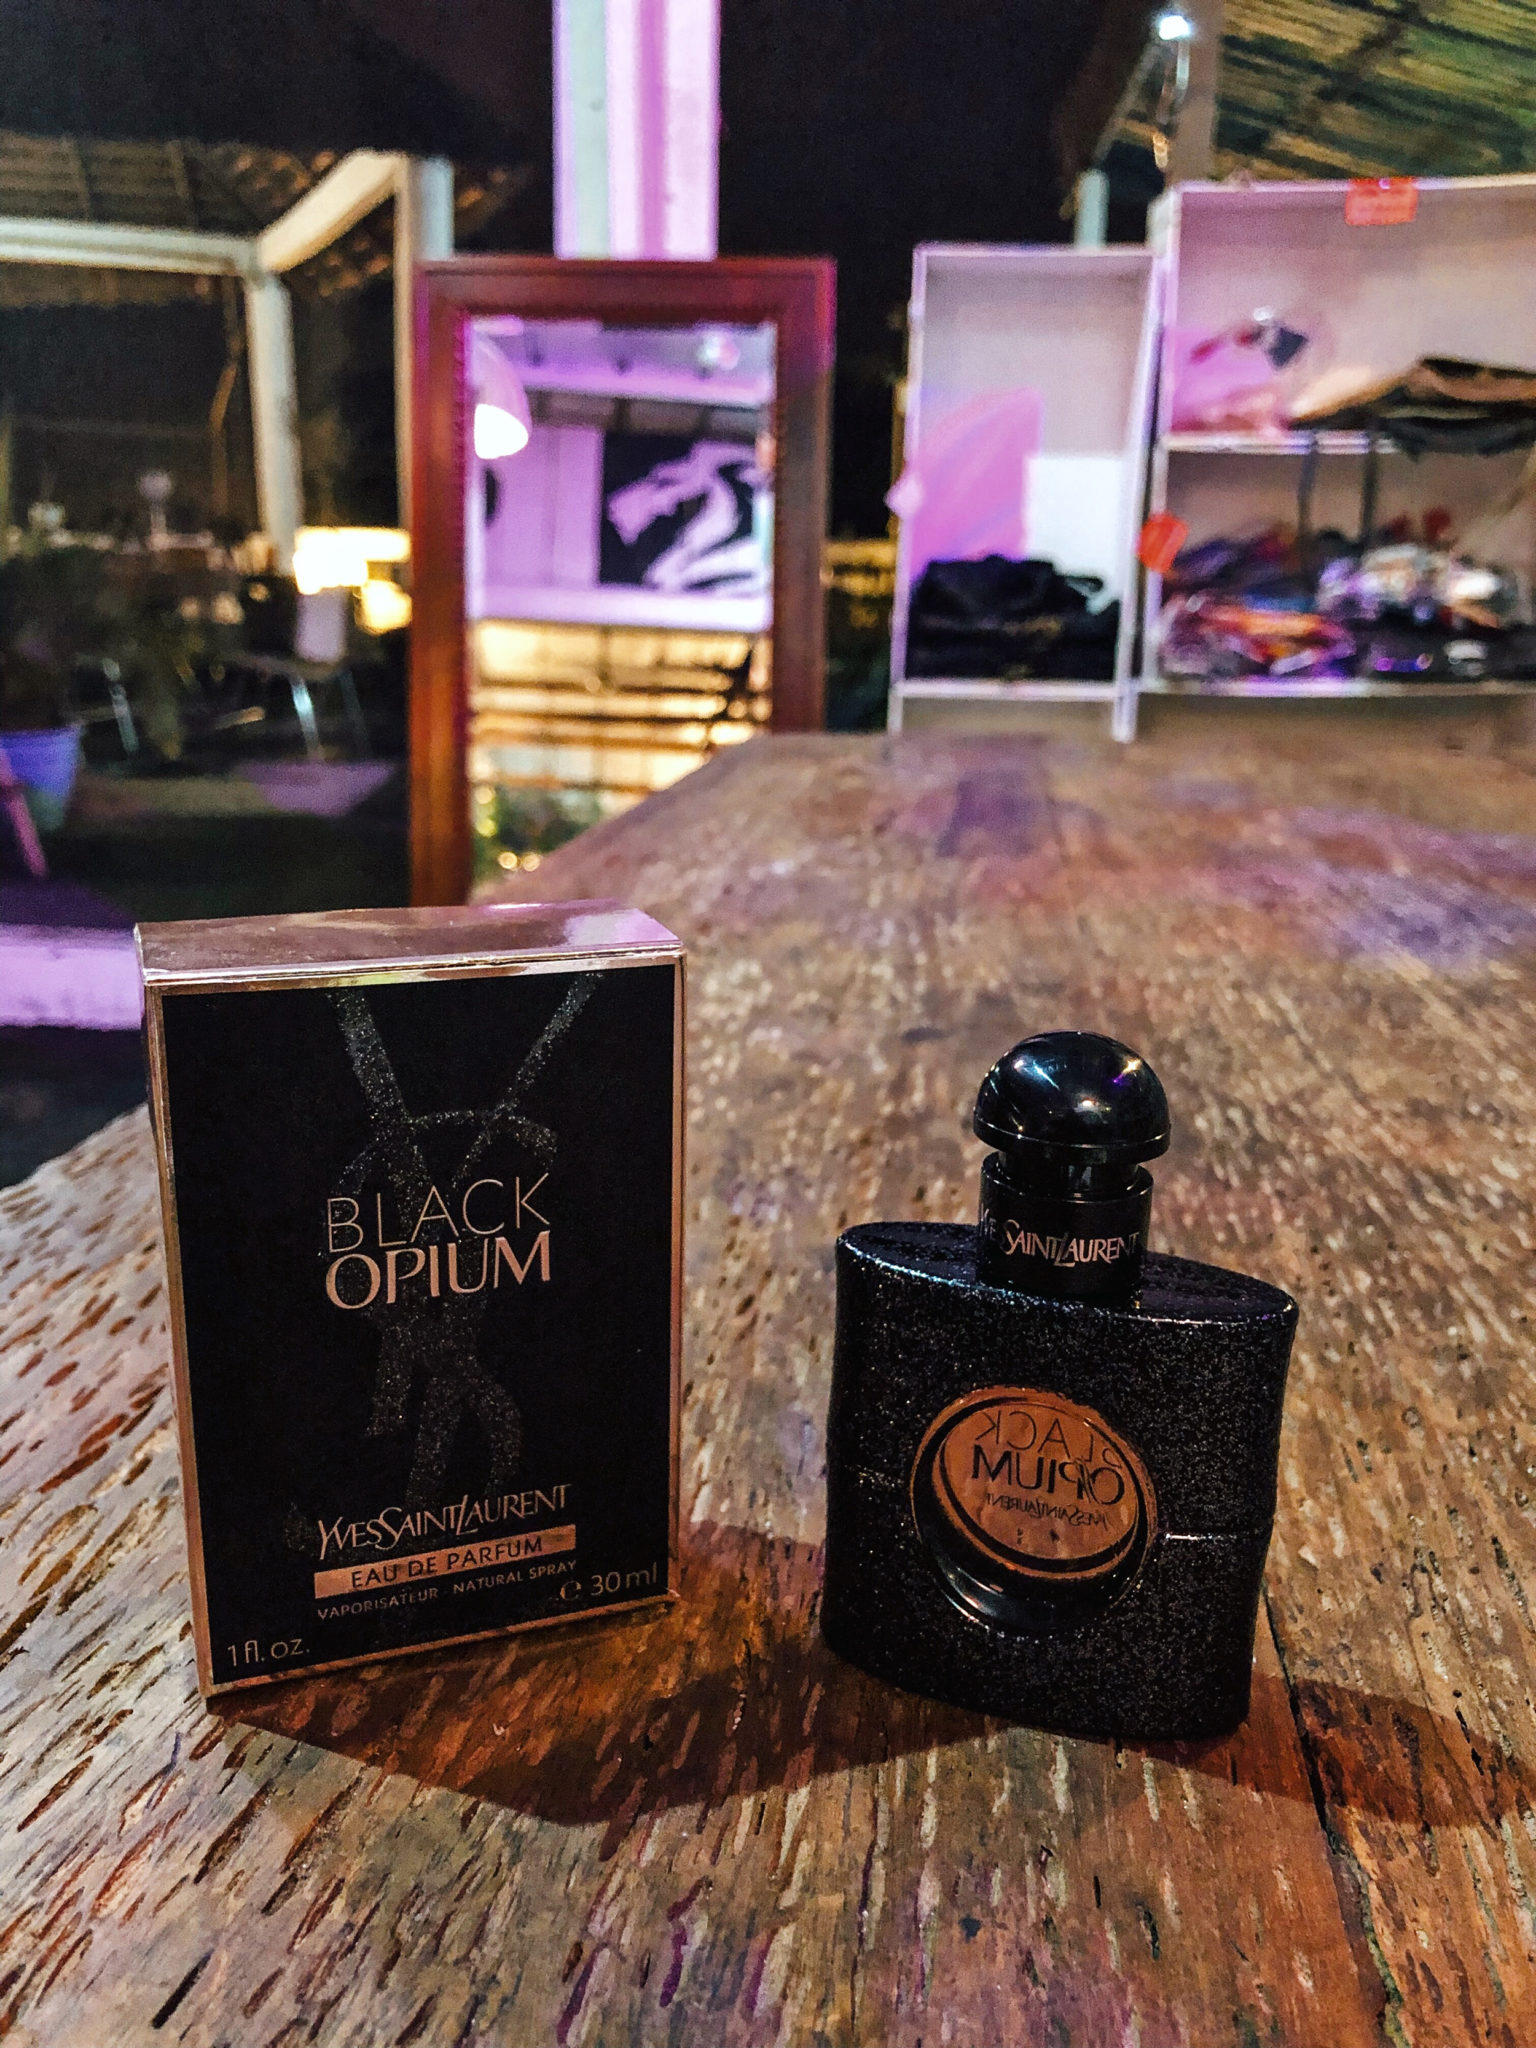 tendance parfums parfum black opium yves saint laurent